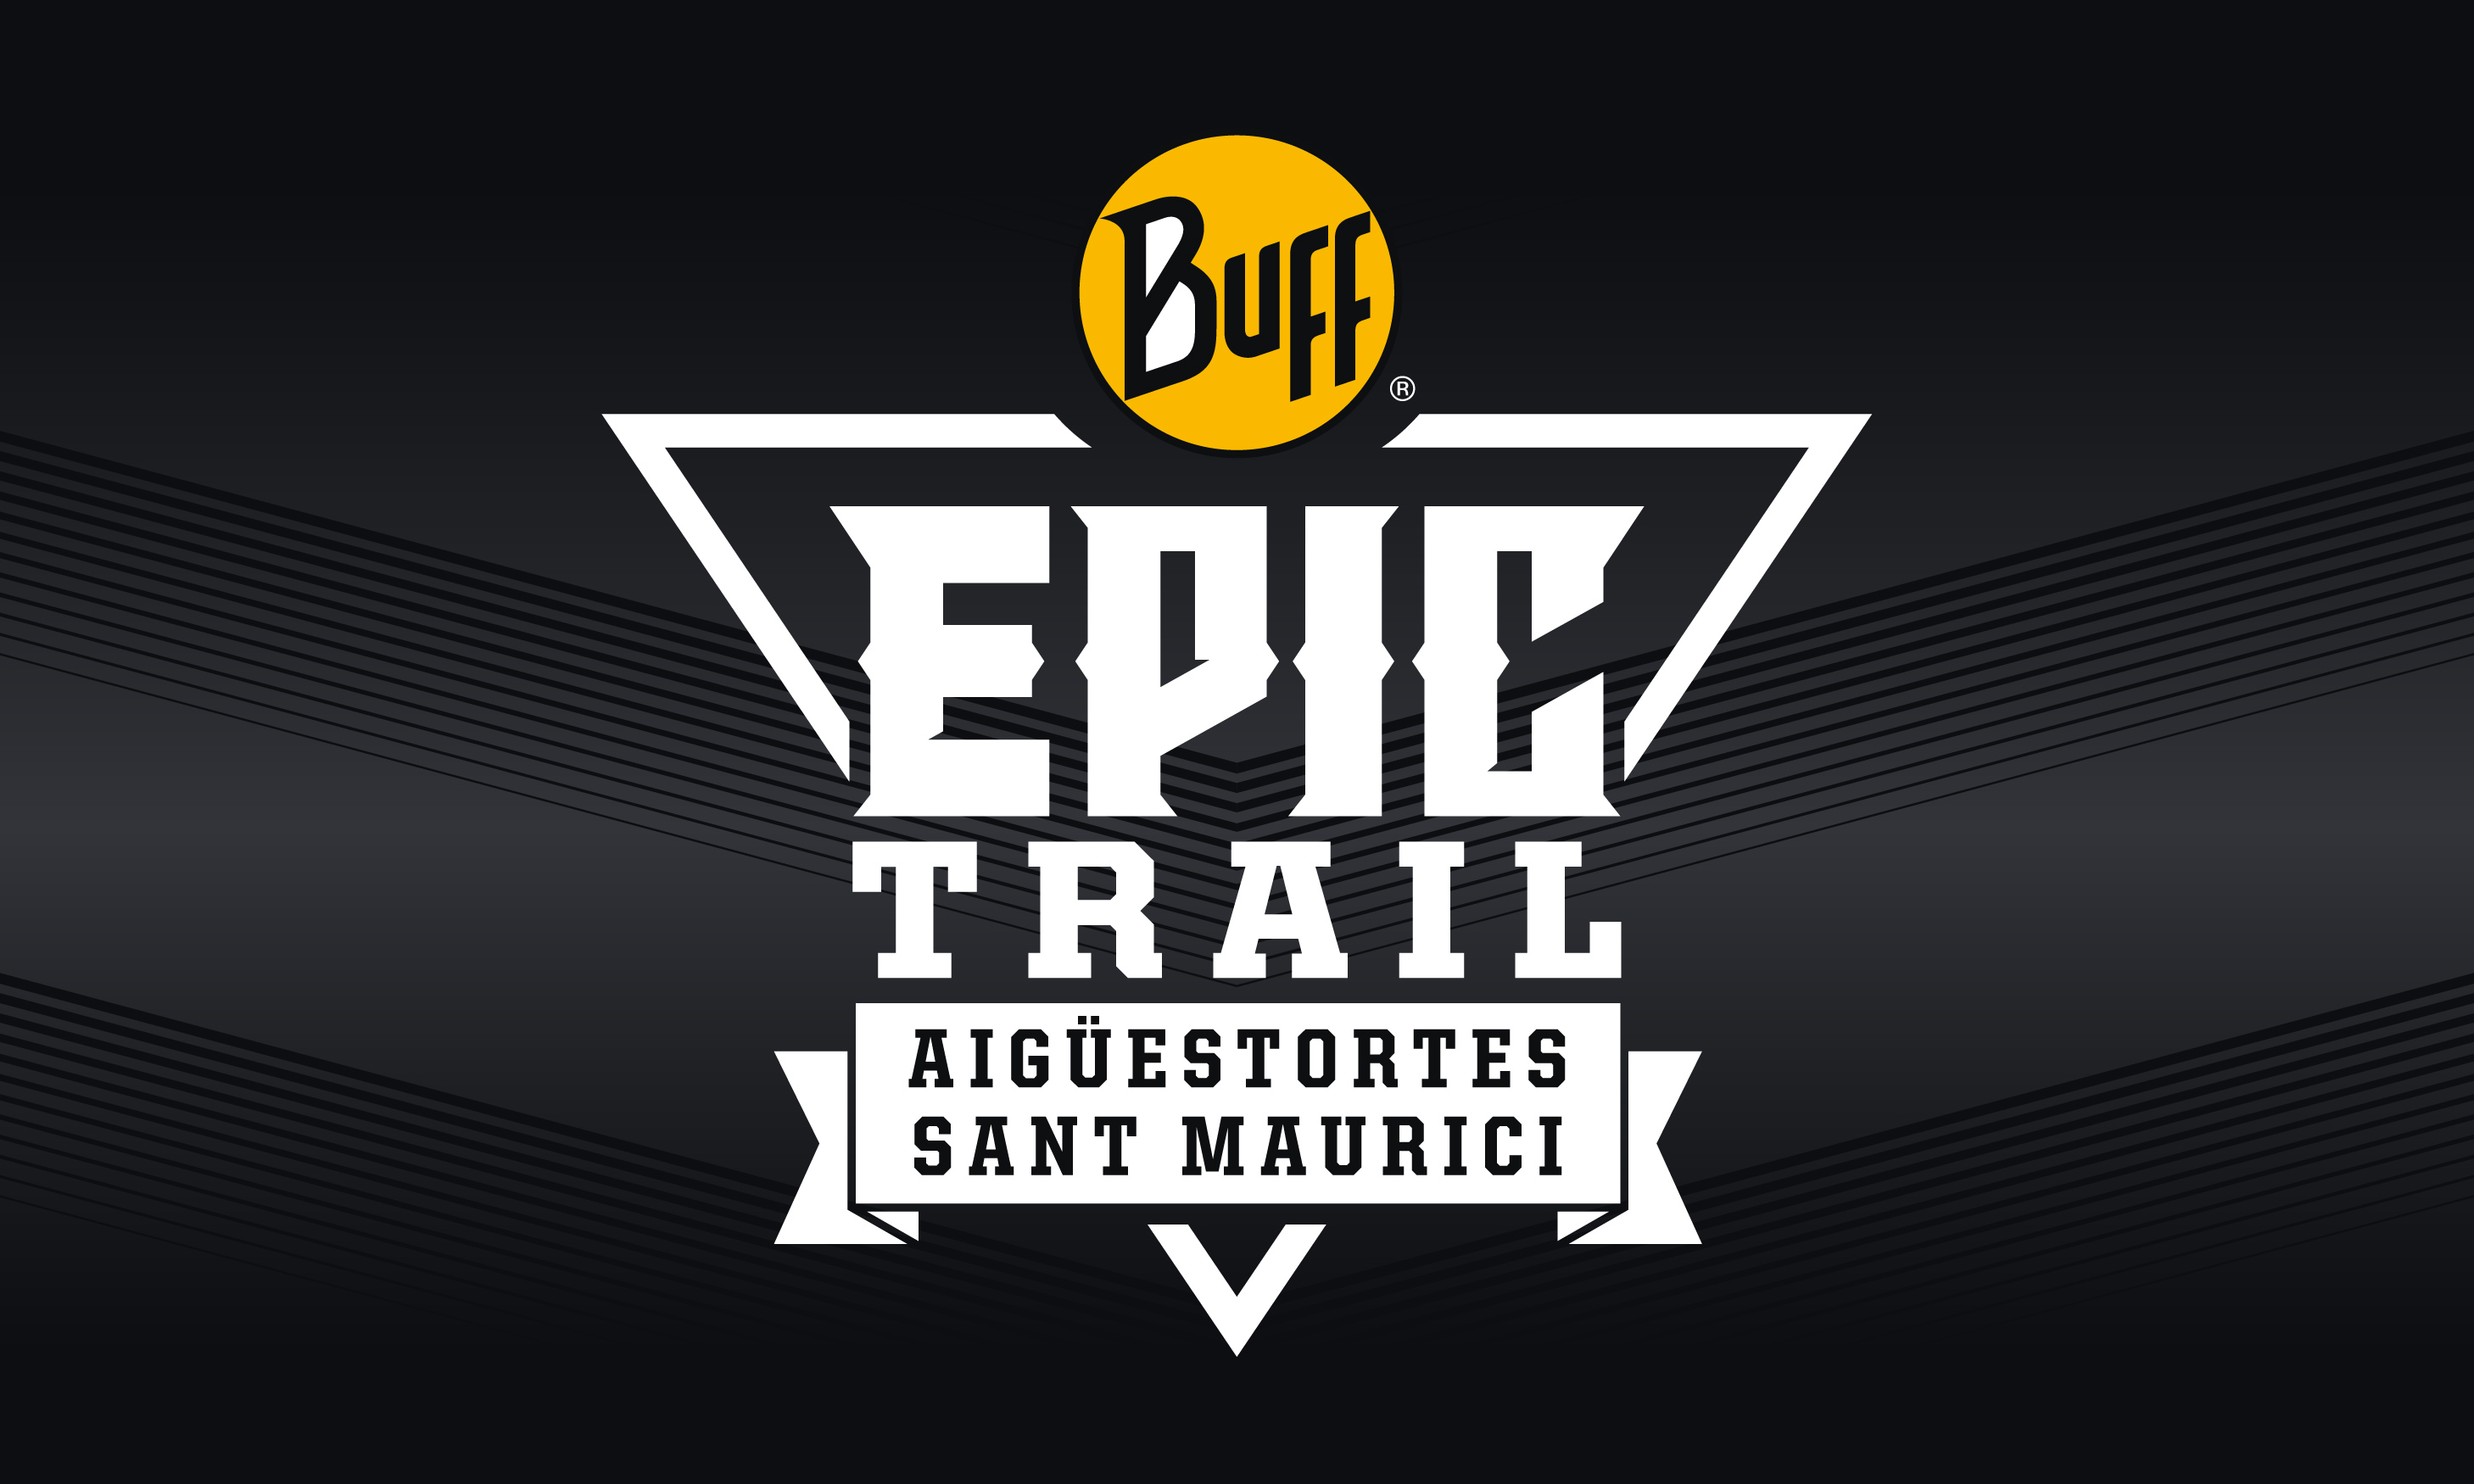 BUFF� Epic Trail 105KM - 42KM - 21KM